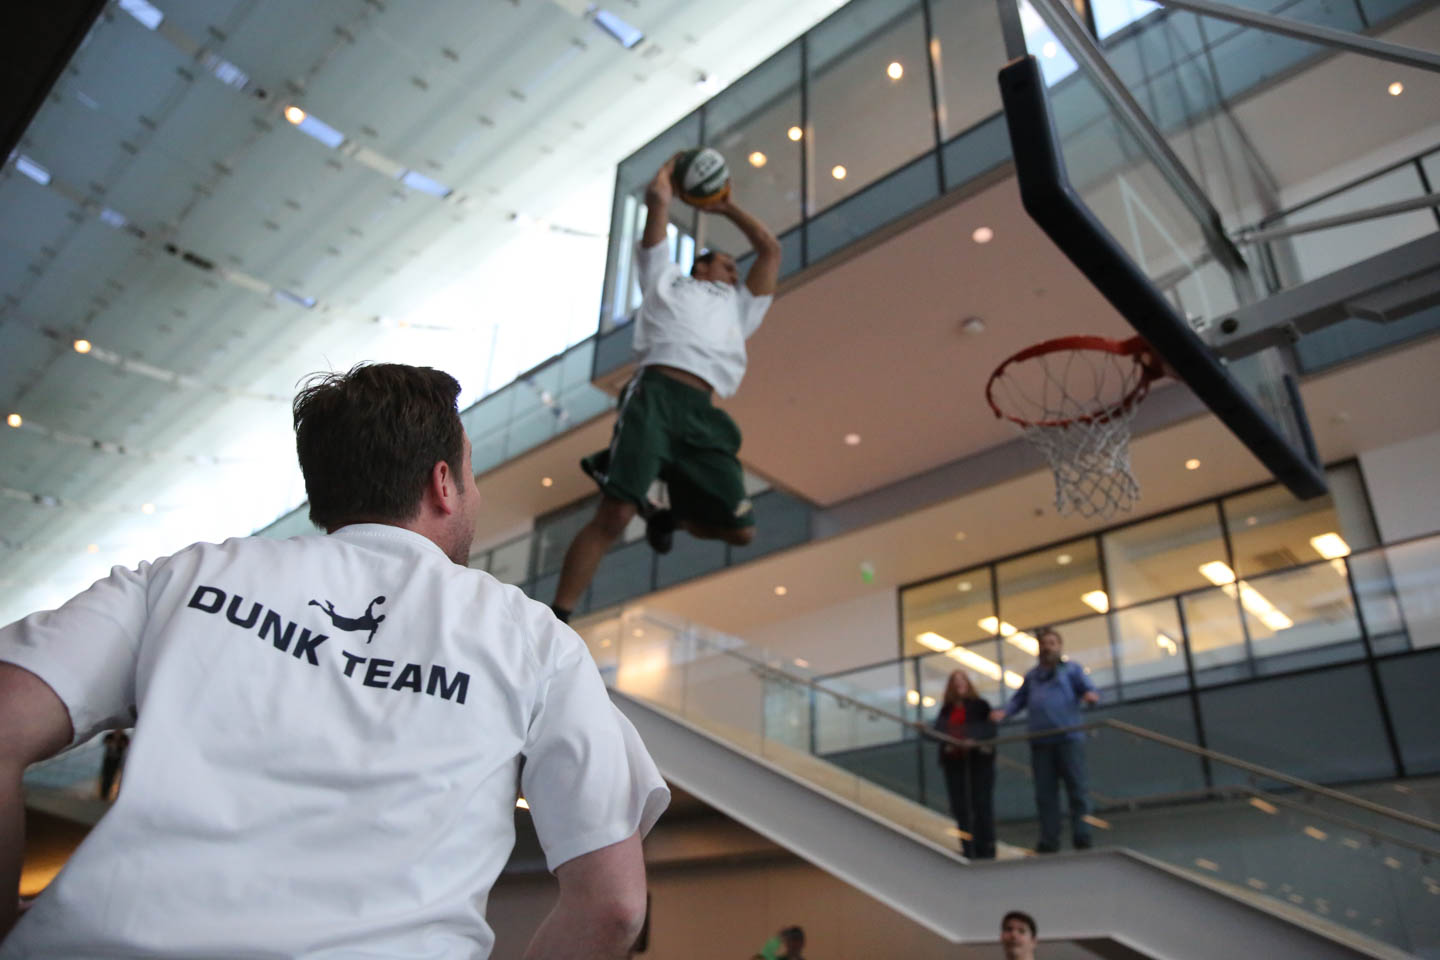 Utah Jazz Dunk Team